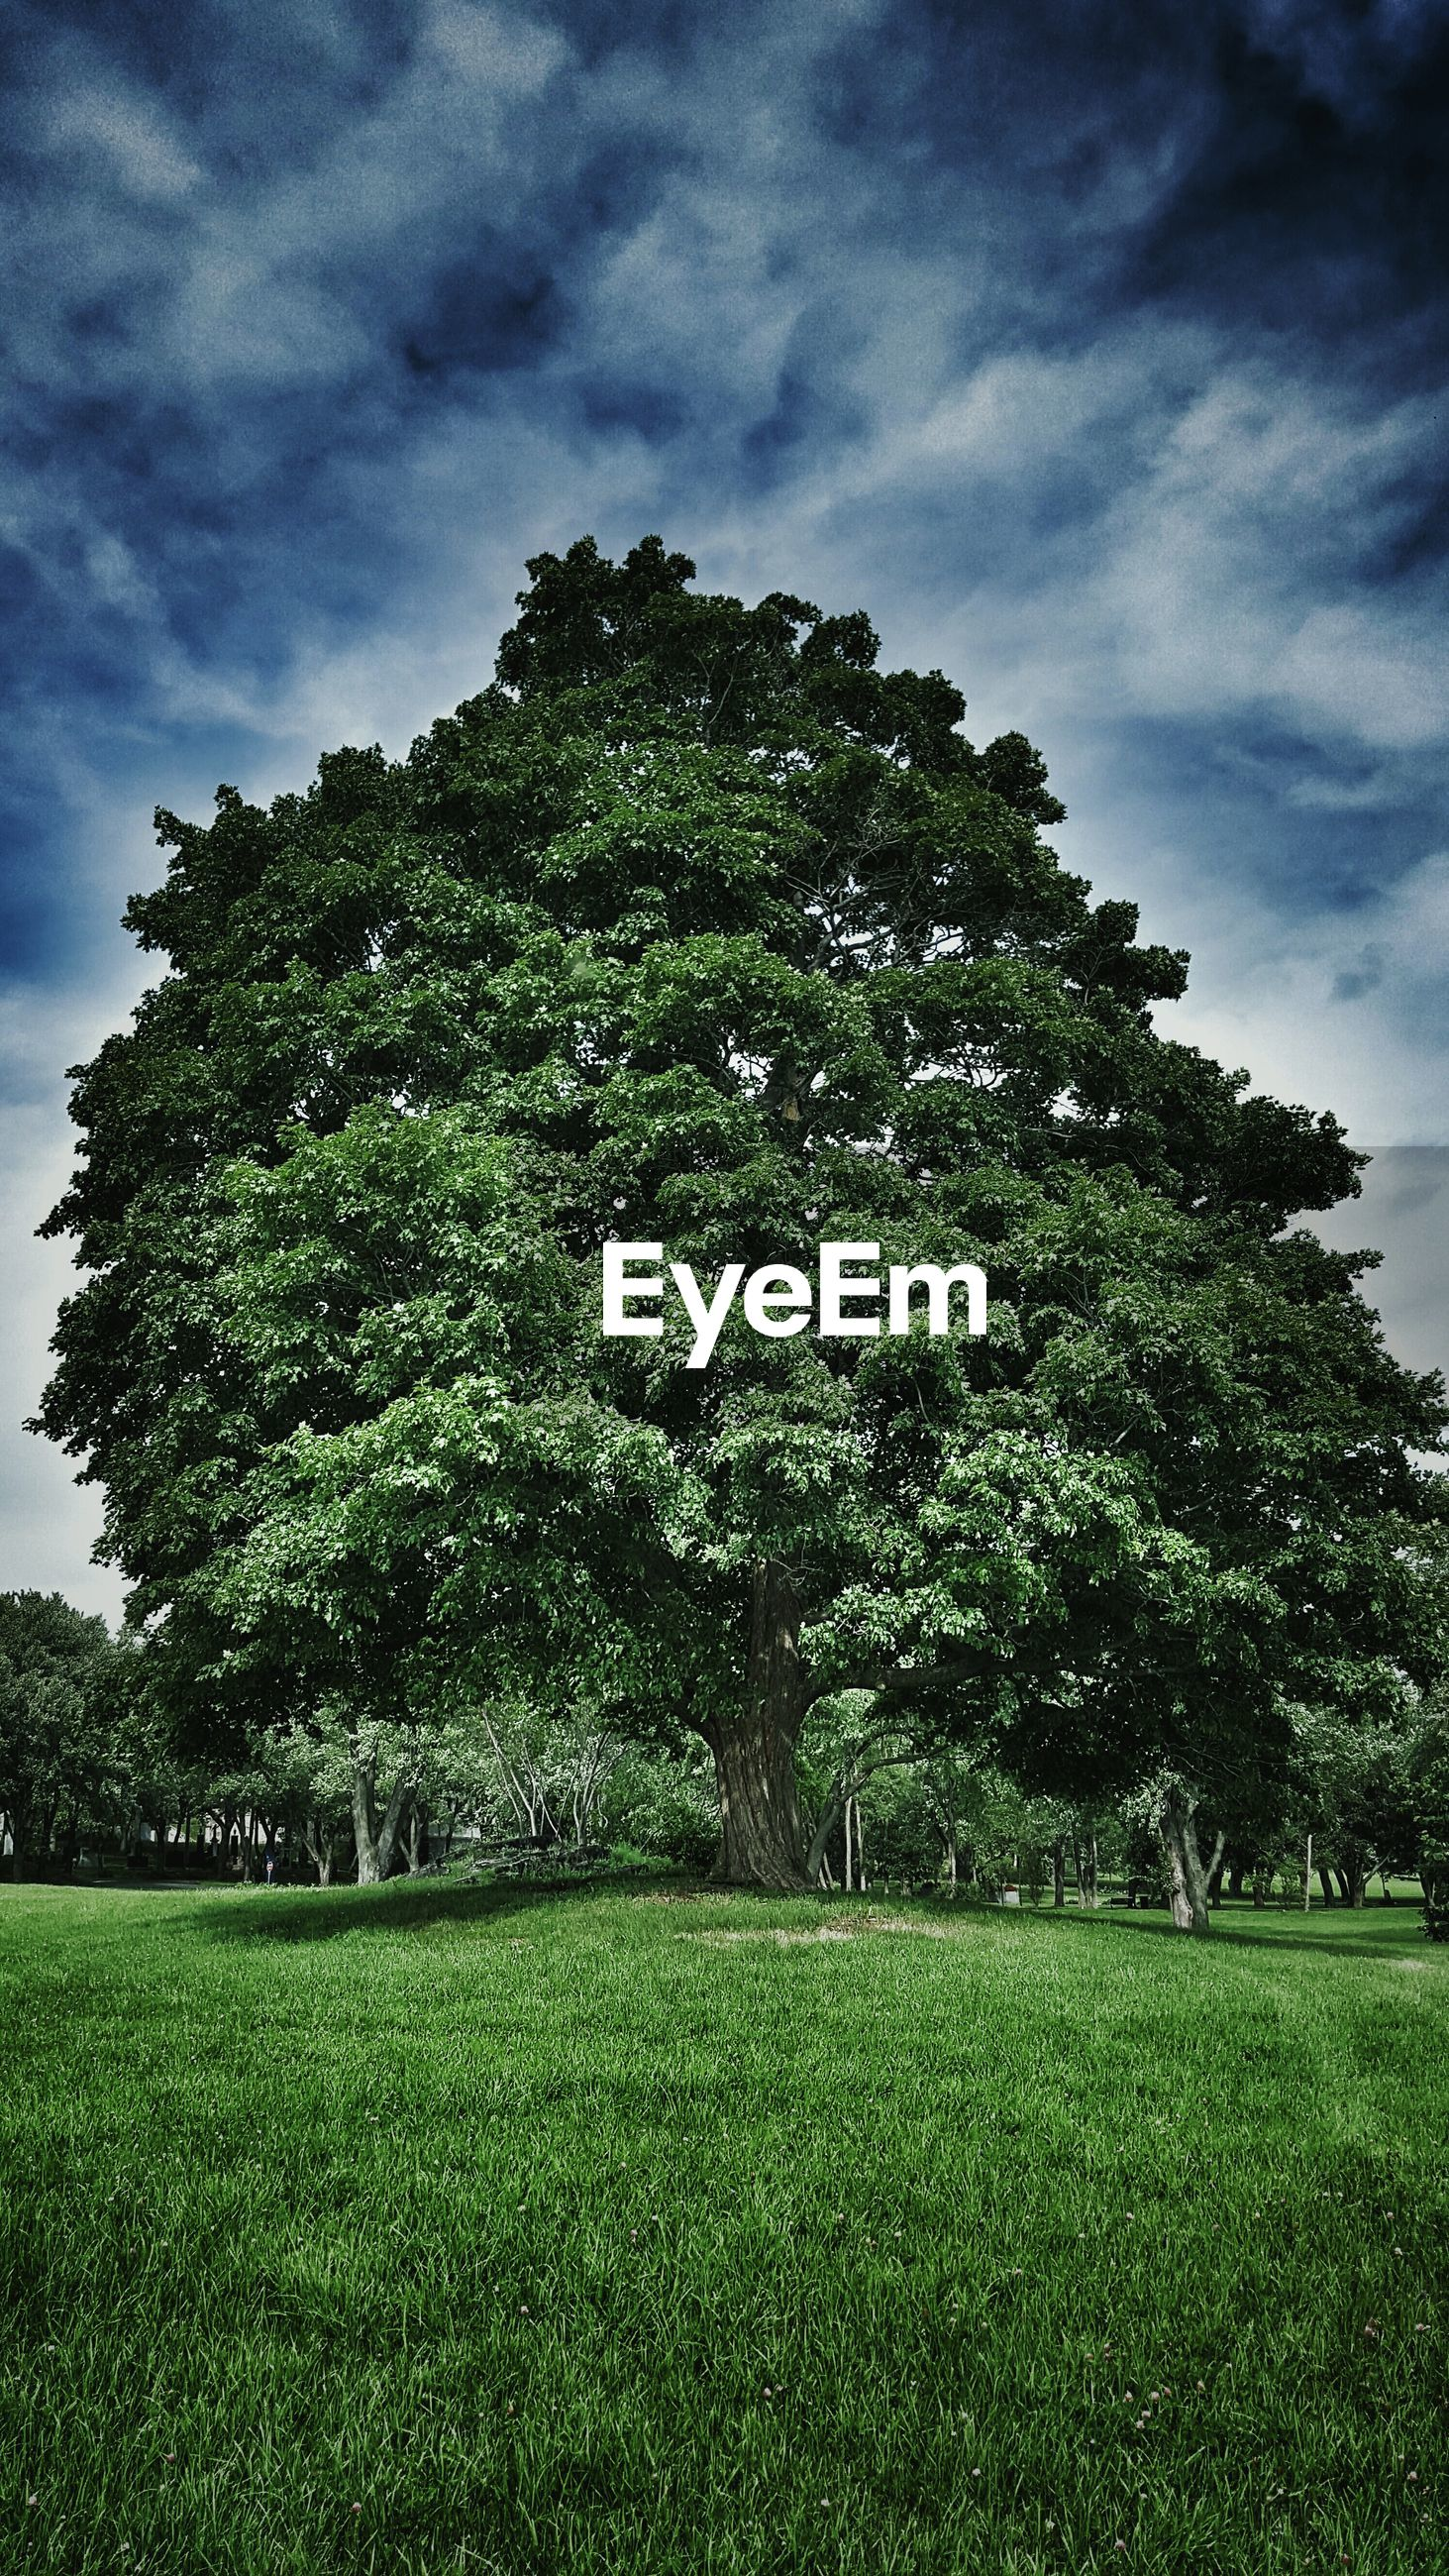 Low angle view of tree on grassy field against cloudy sky